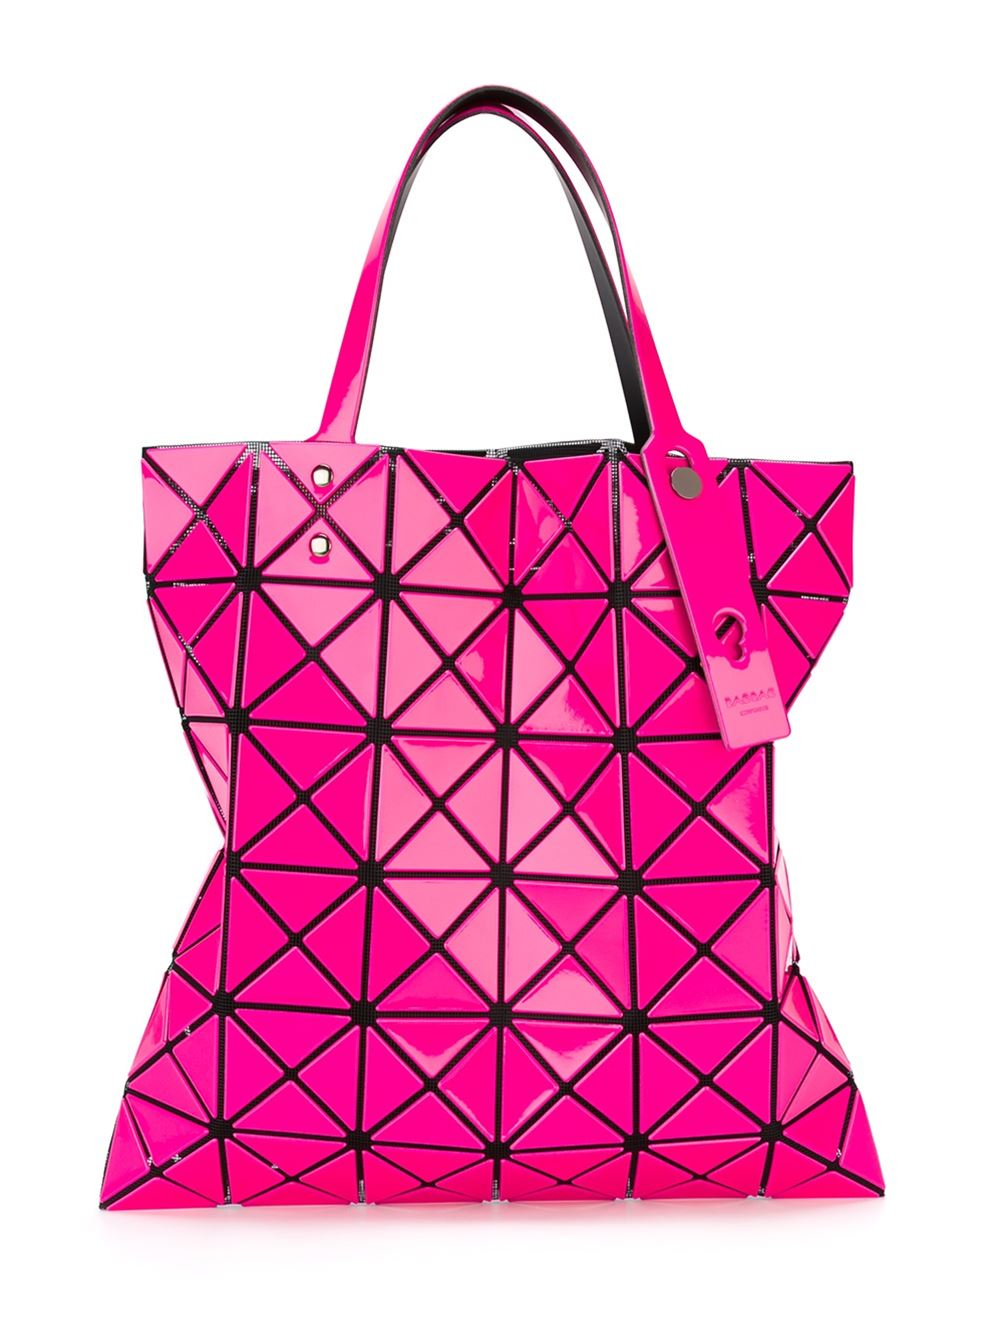 Bao Bao Issey Miyake Synthetic 'prism' Tote in Pink/Purple (Pink)